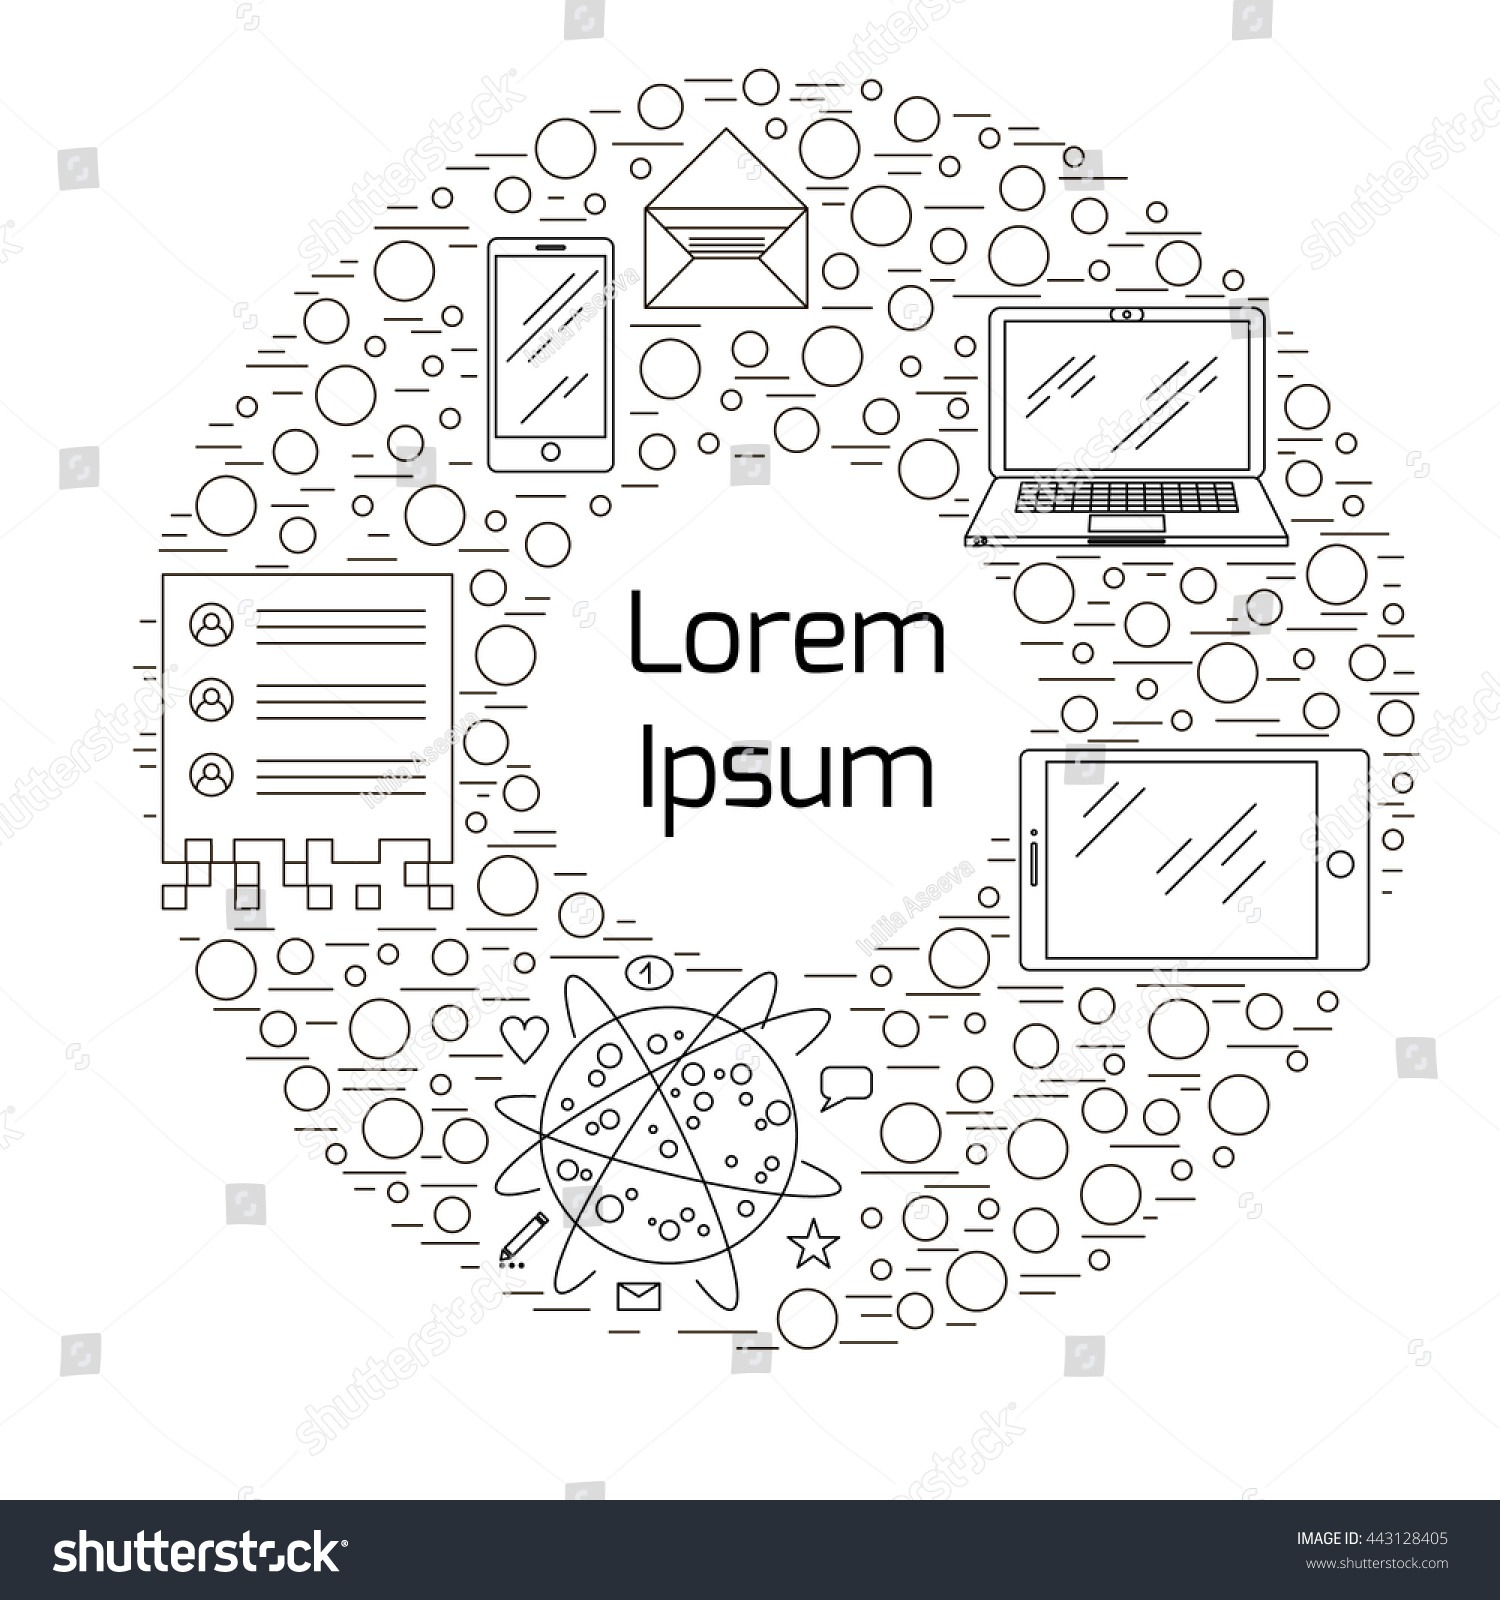 simple presentation topic best ideas about presentation topics  illustration on topic technology mass media stock vector illustration on topic of technology and mass media